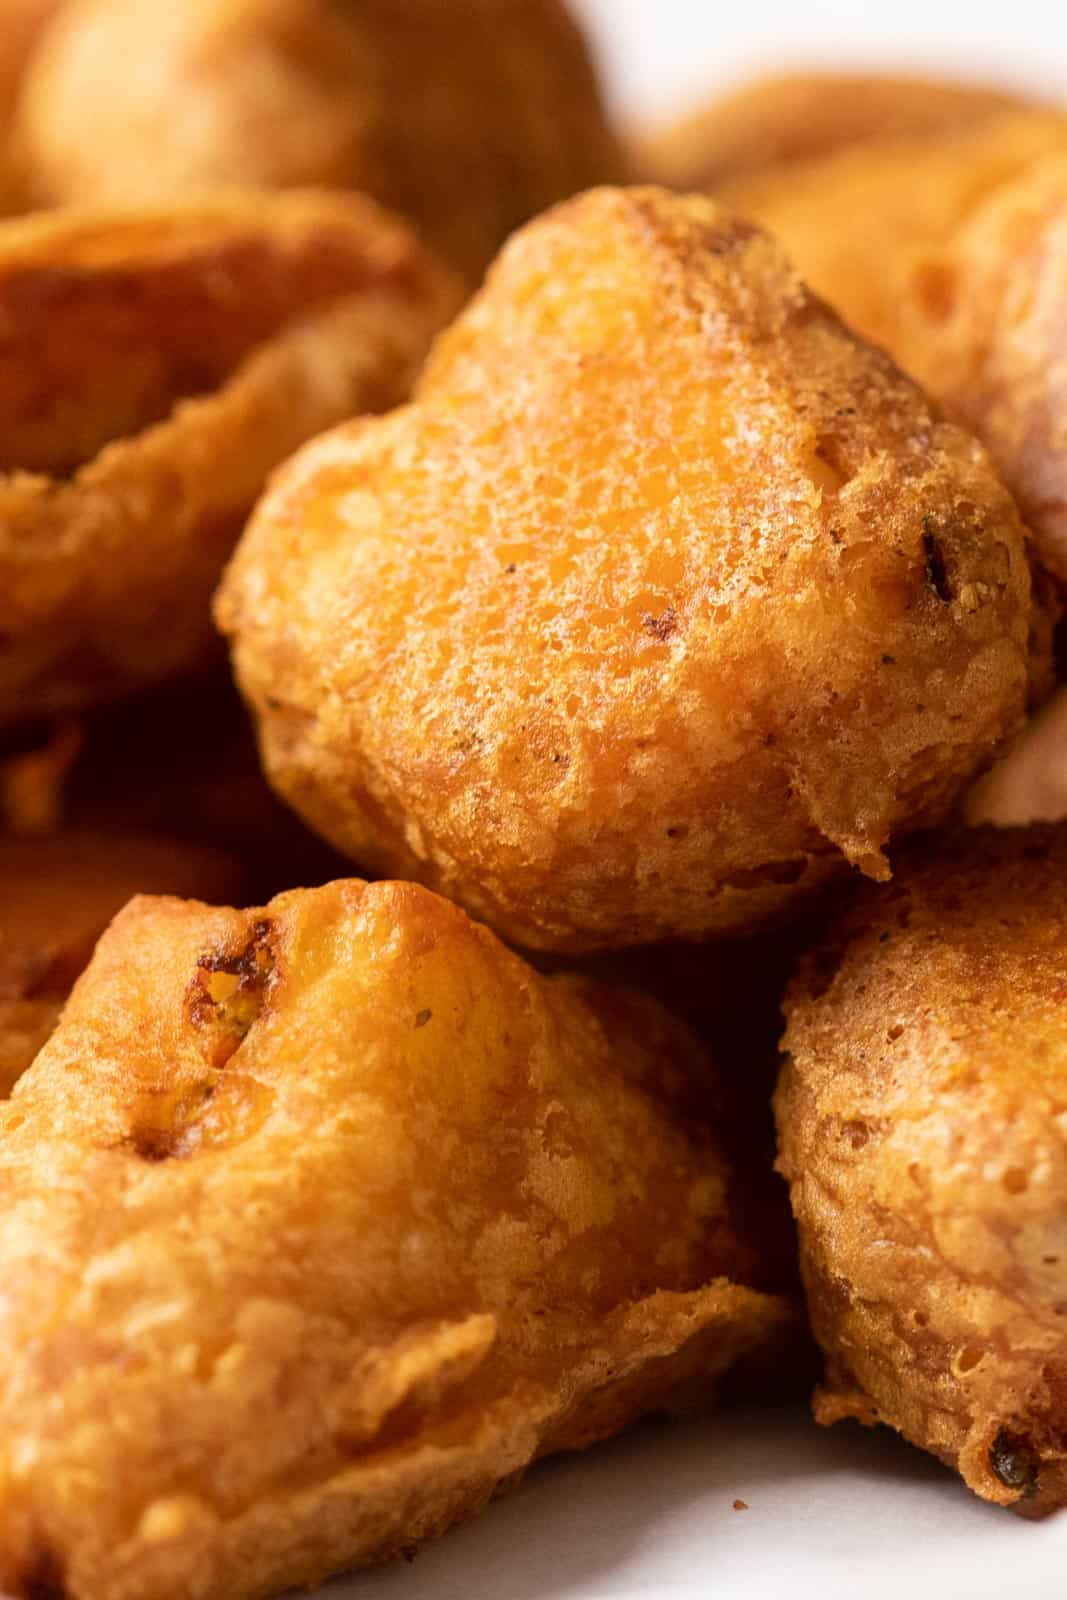 Closeup to show the crispy batter of paneer pakoras